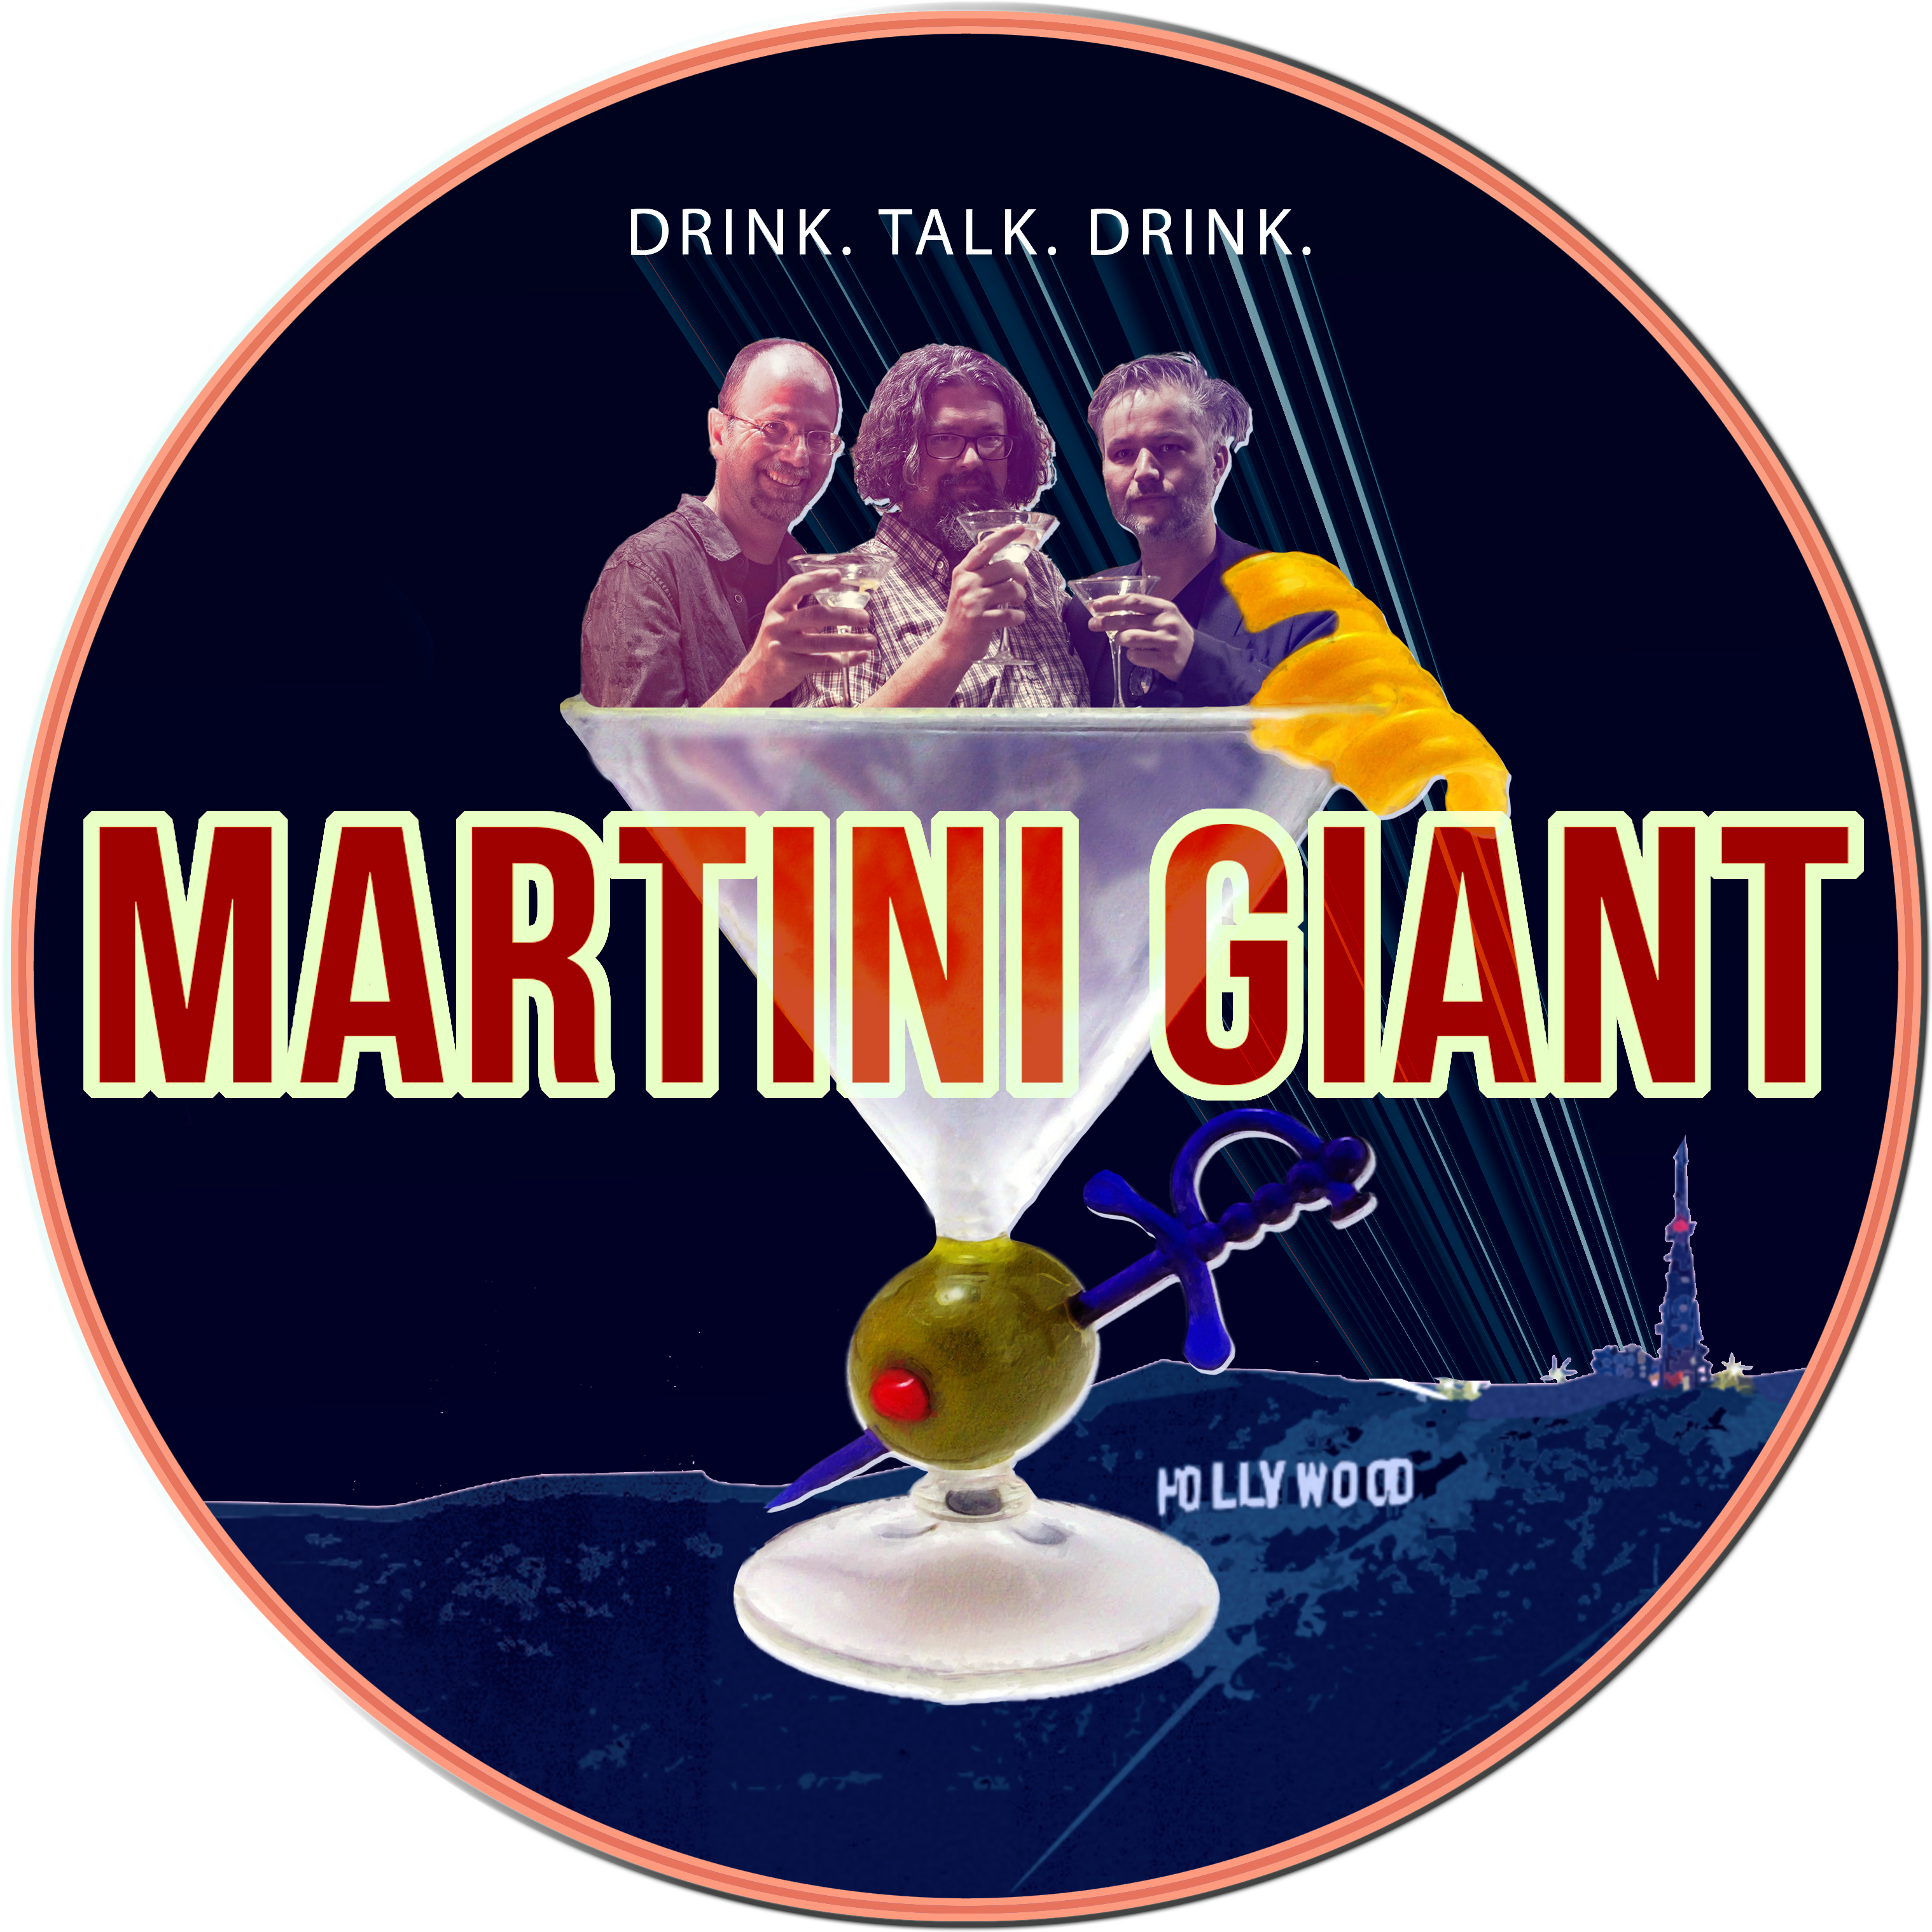 Martini Giant show art